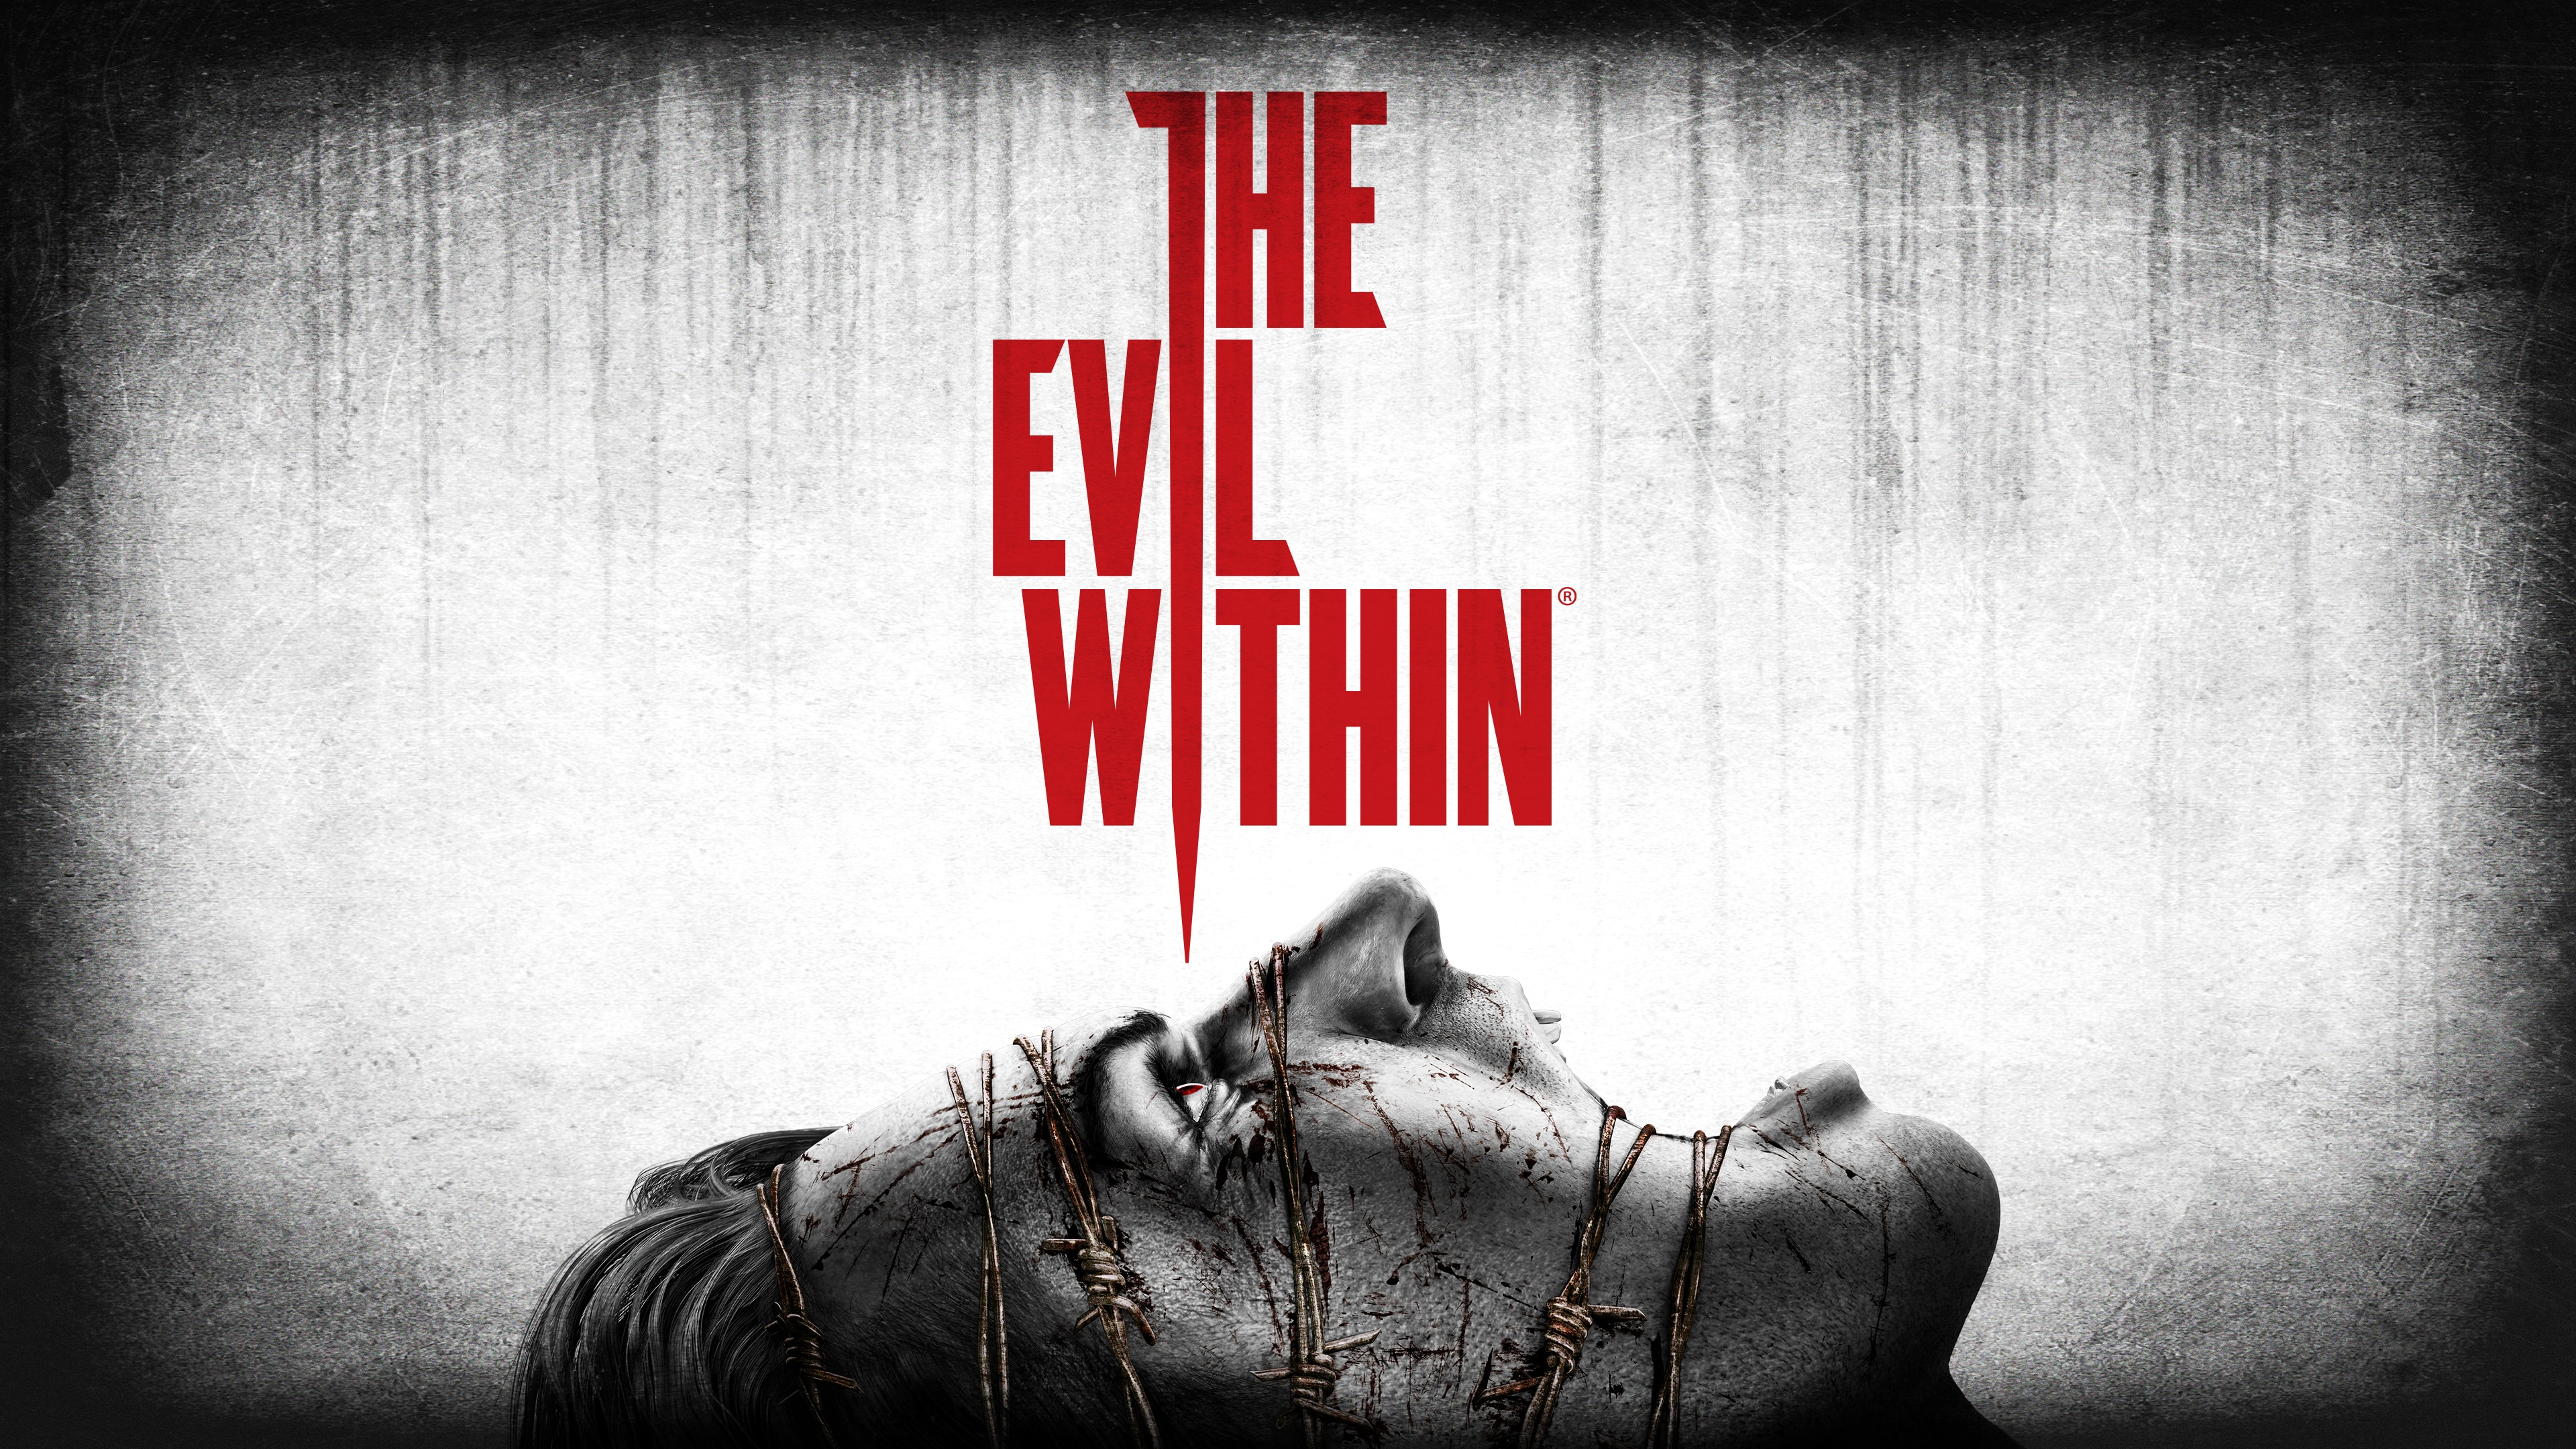 The Evil Within (English Ver.)